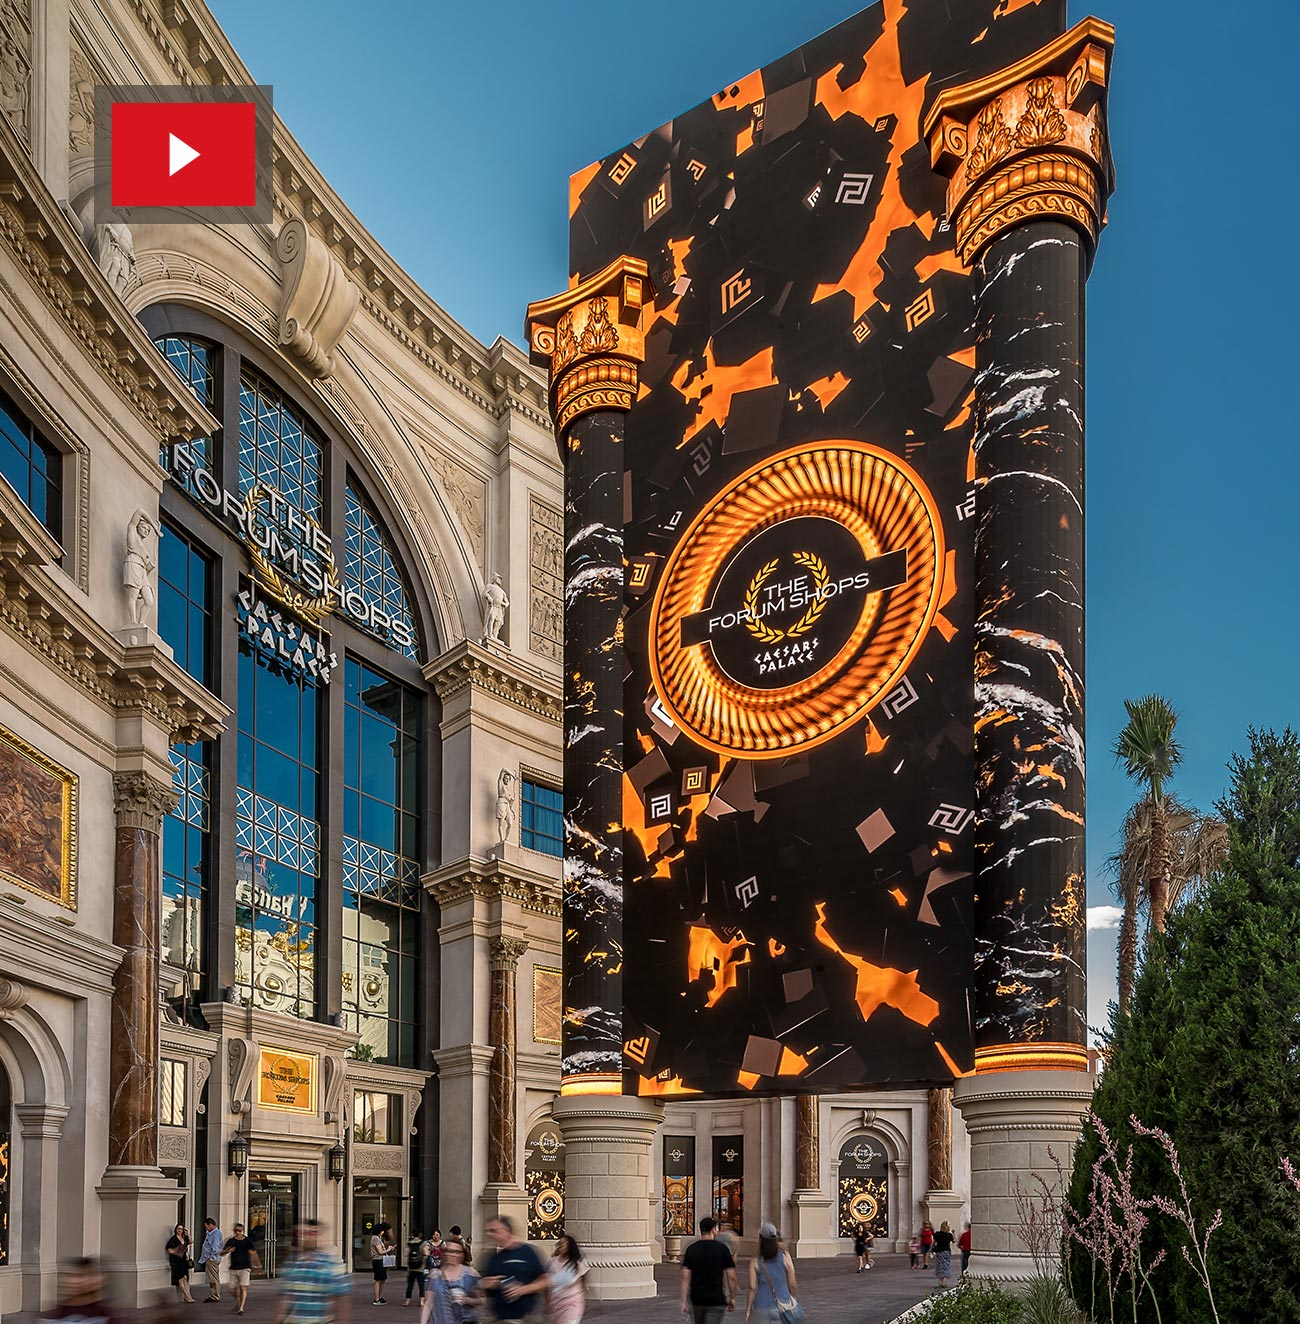 The Forum Shops at Caesars Palace